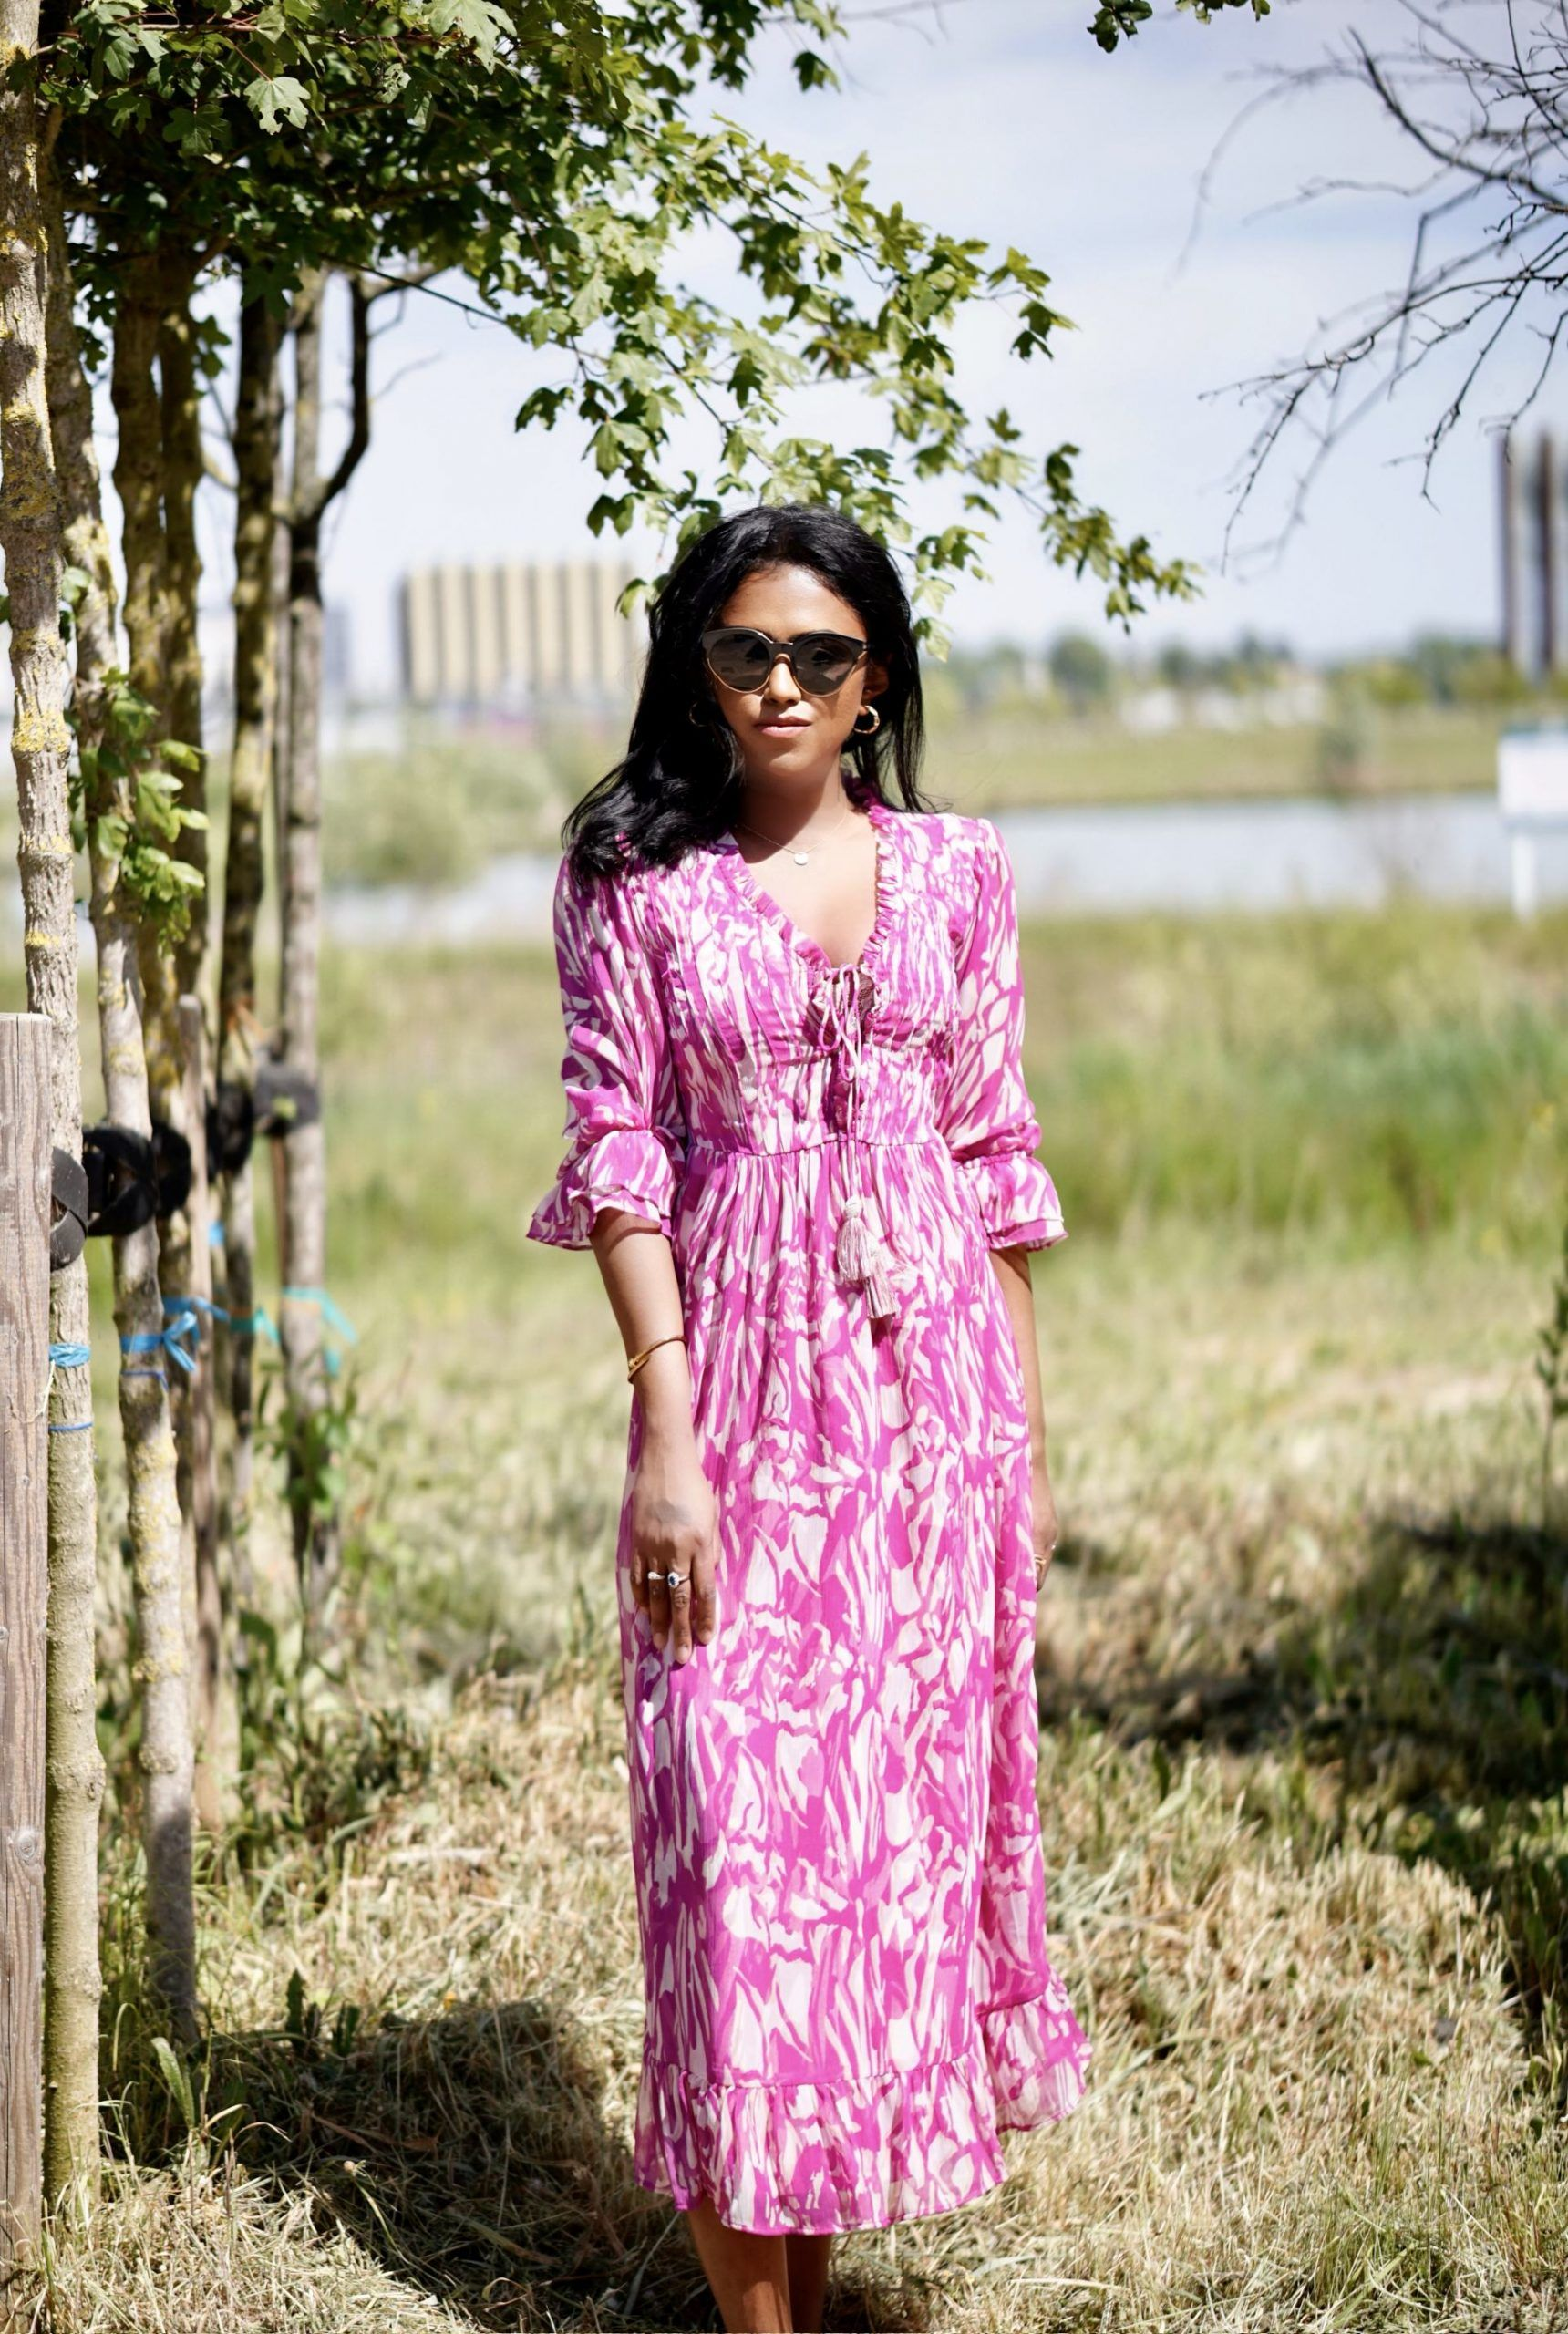 Sachini in the nature wearing a white and pink dress